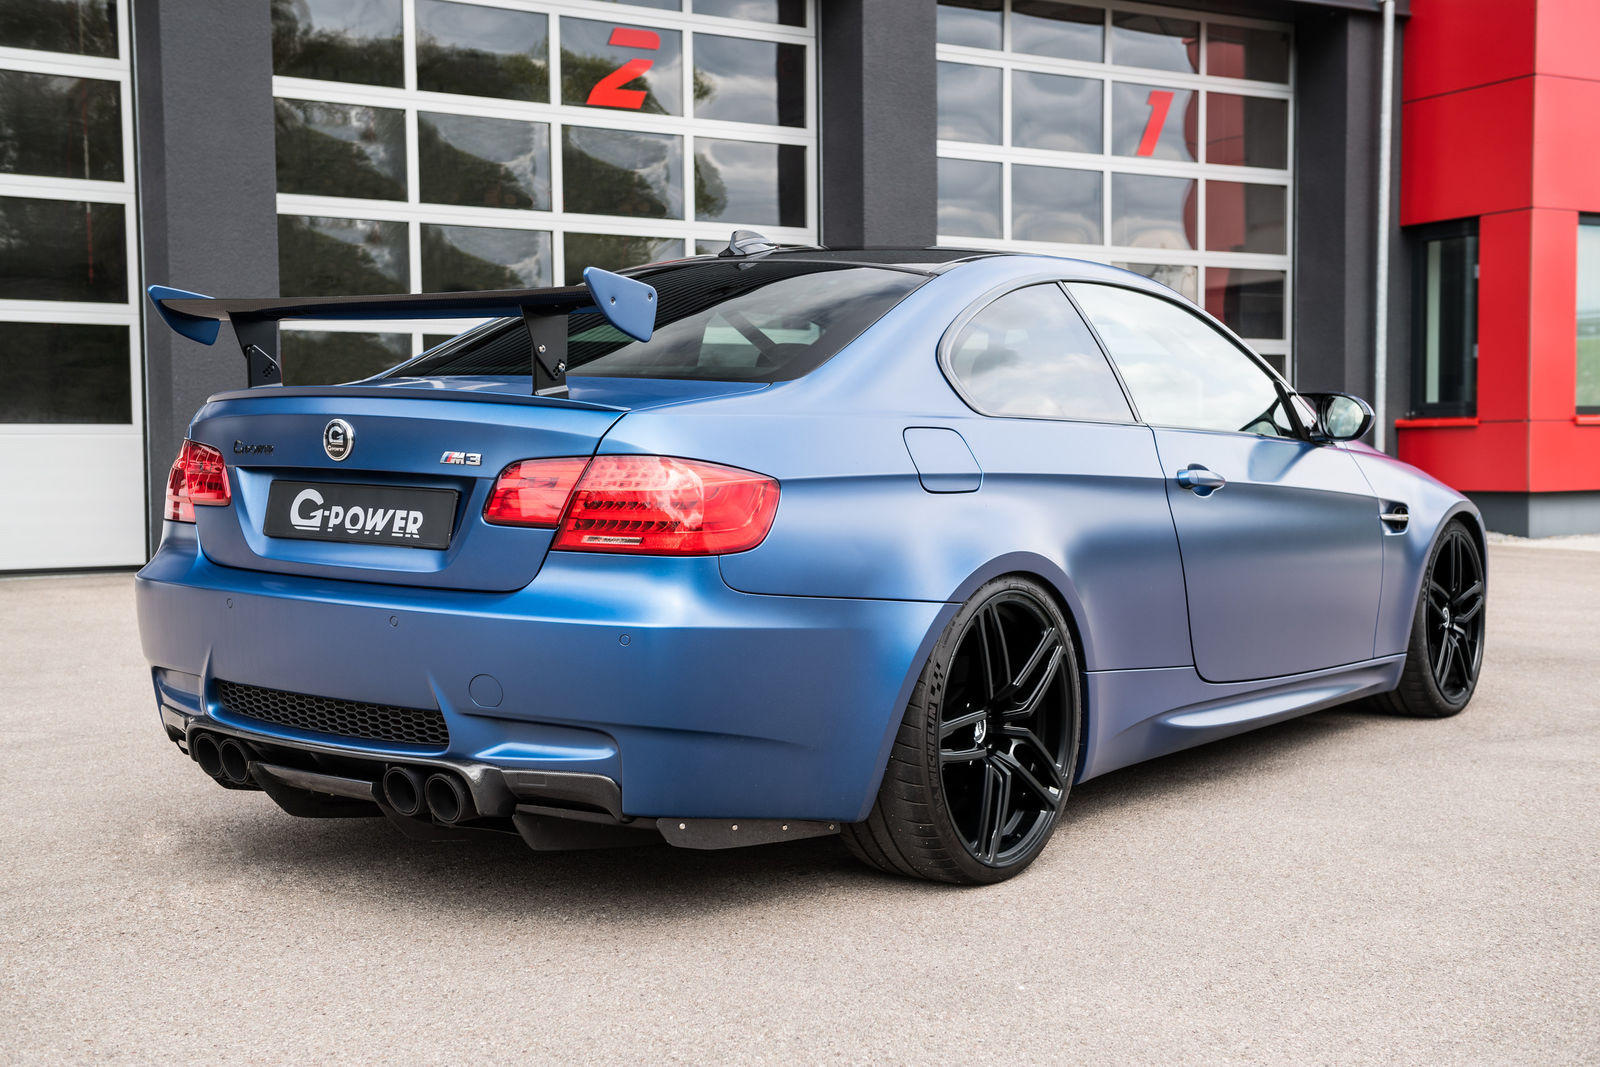 BMW M3 by G-Power - BMW M3 by G-Power